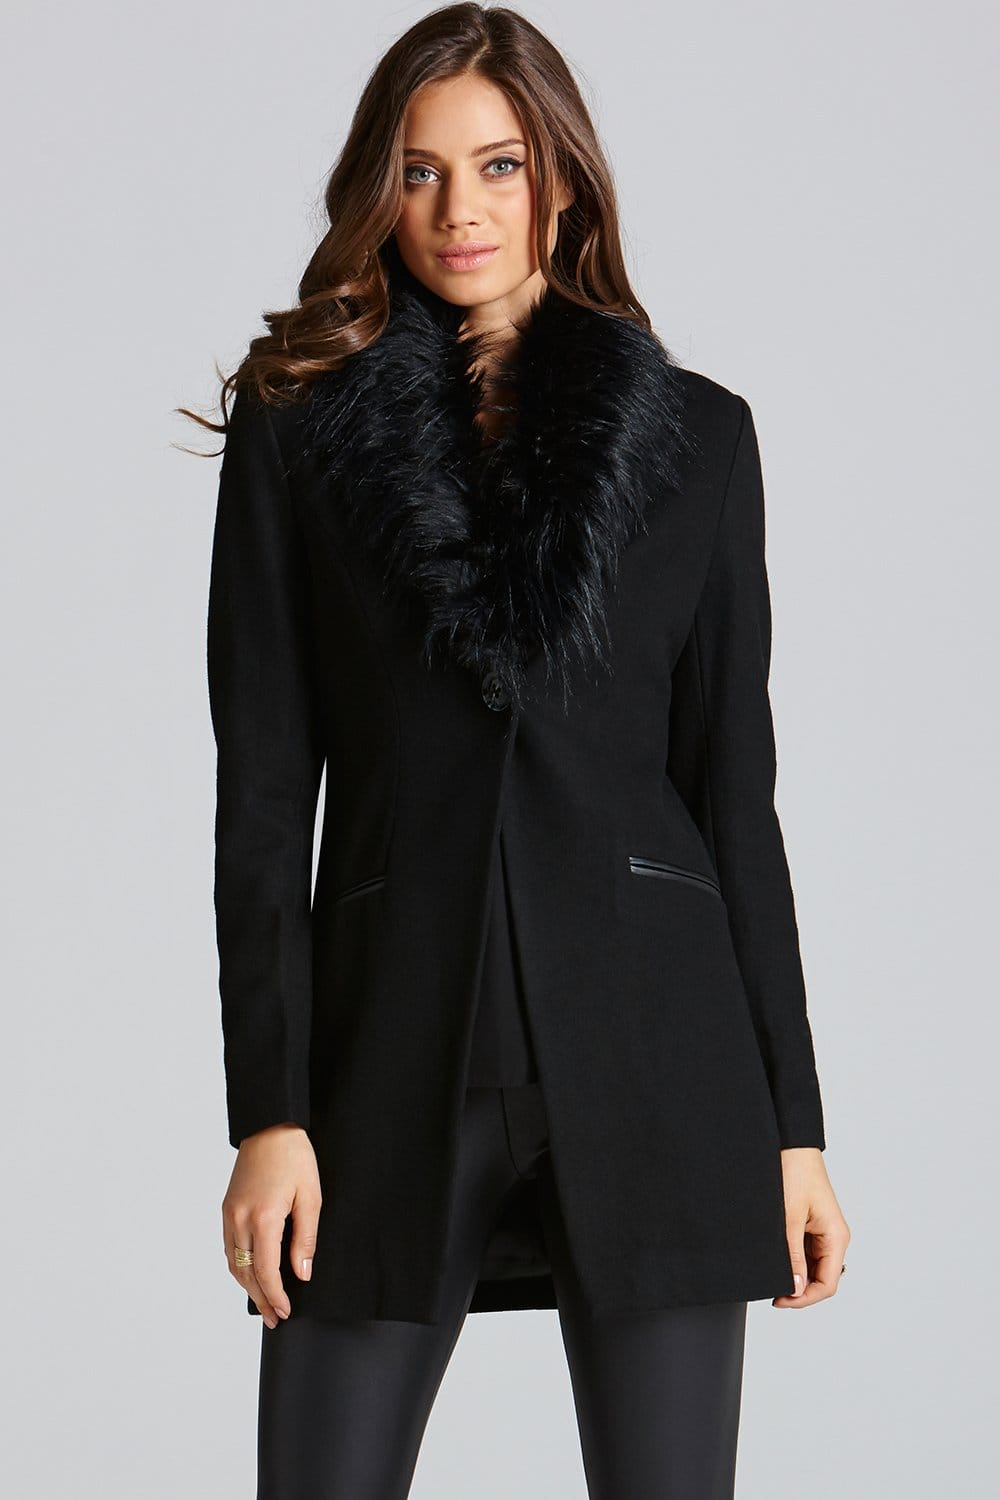 Little Mistress Black Faux Fur Collared Coat - Little Mistress ...